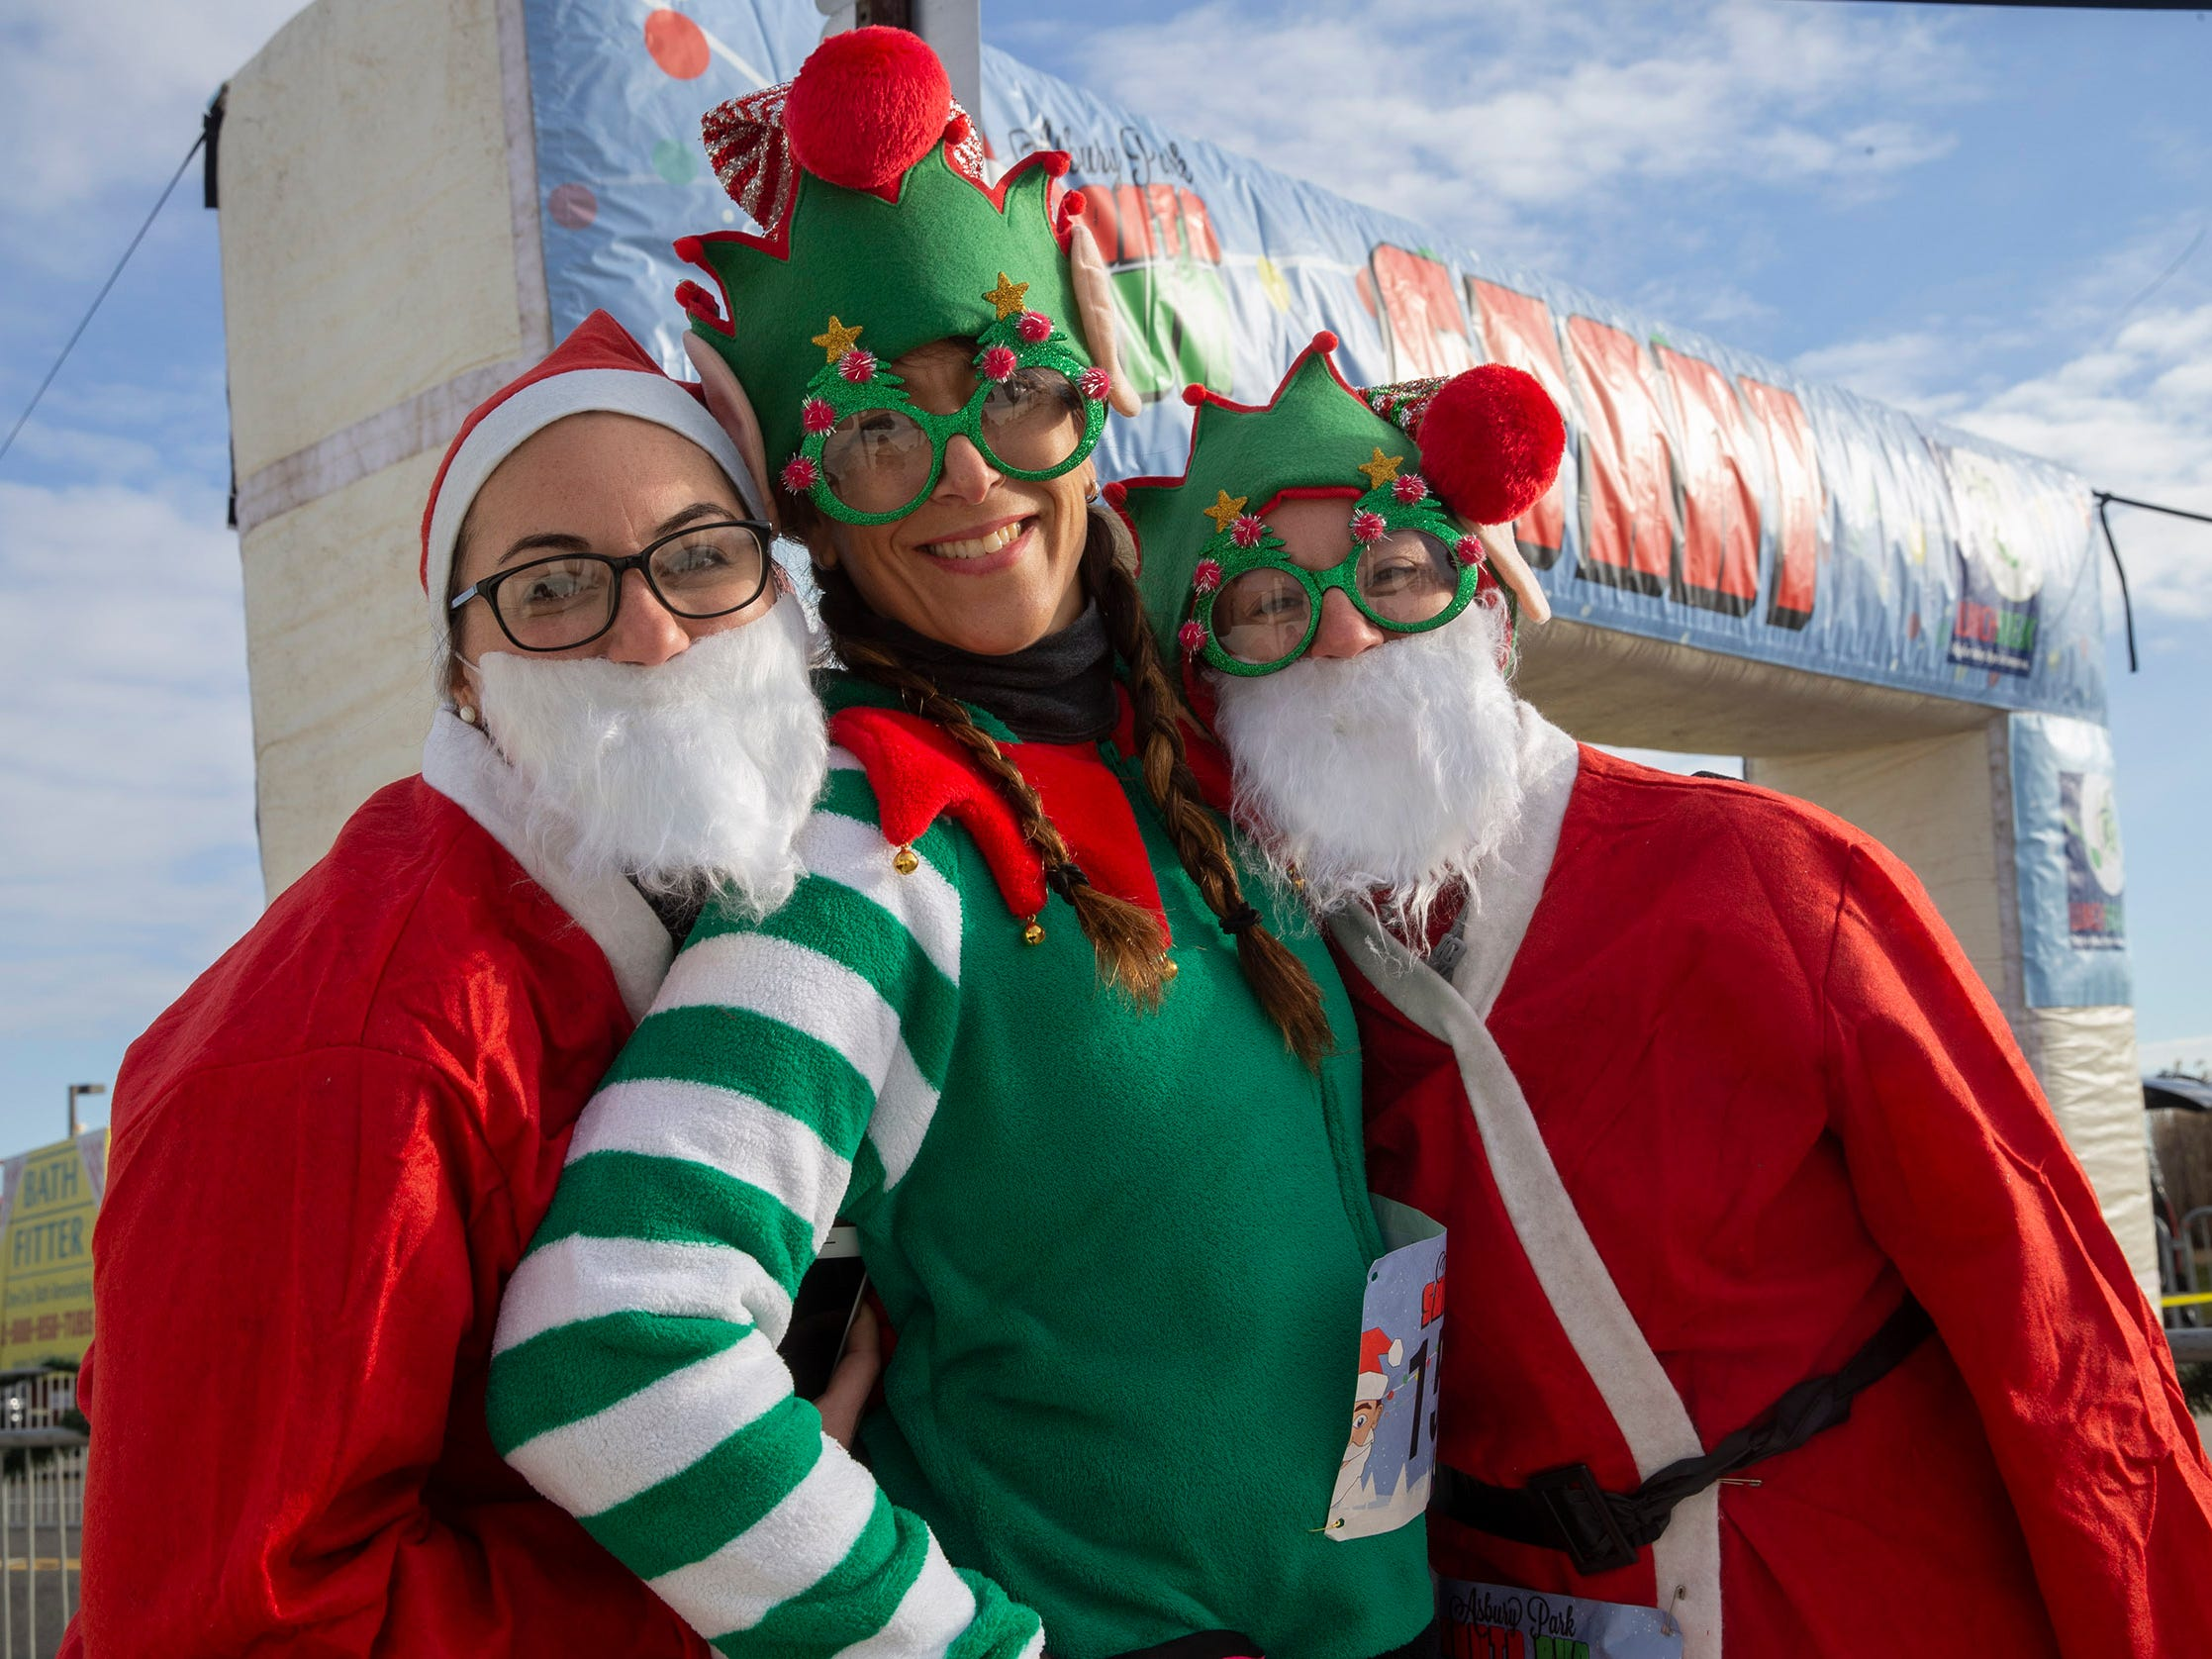 Amailie Kreitman of Glenside, NJ, Jen Tanay of Glenside and Briege McDaniel of Bluebell wait for start of race. Runners brave the cold to participate in the annual Santa Run 5K in Asbury Park on December 8, 2018.